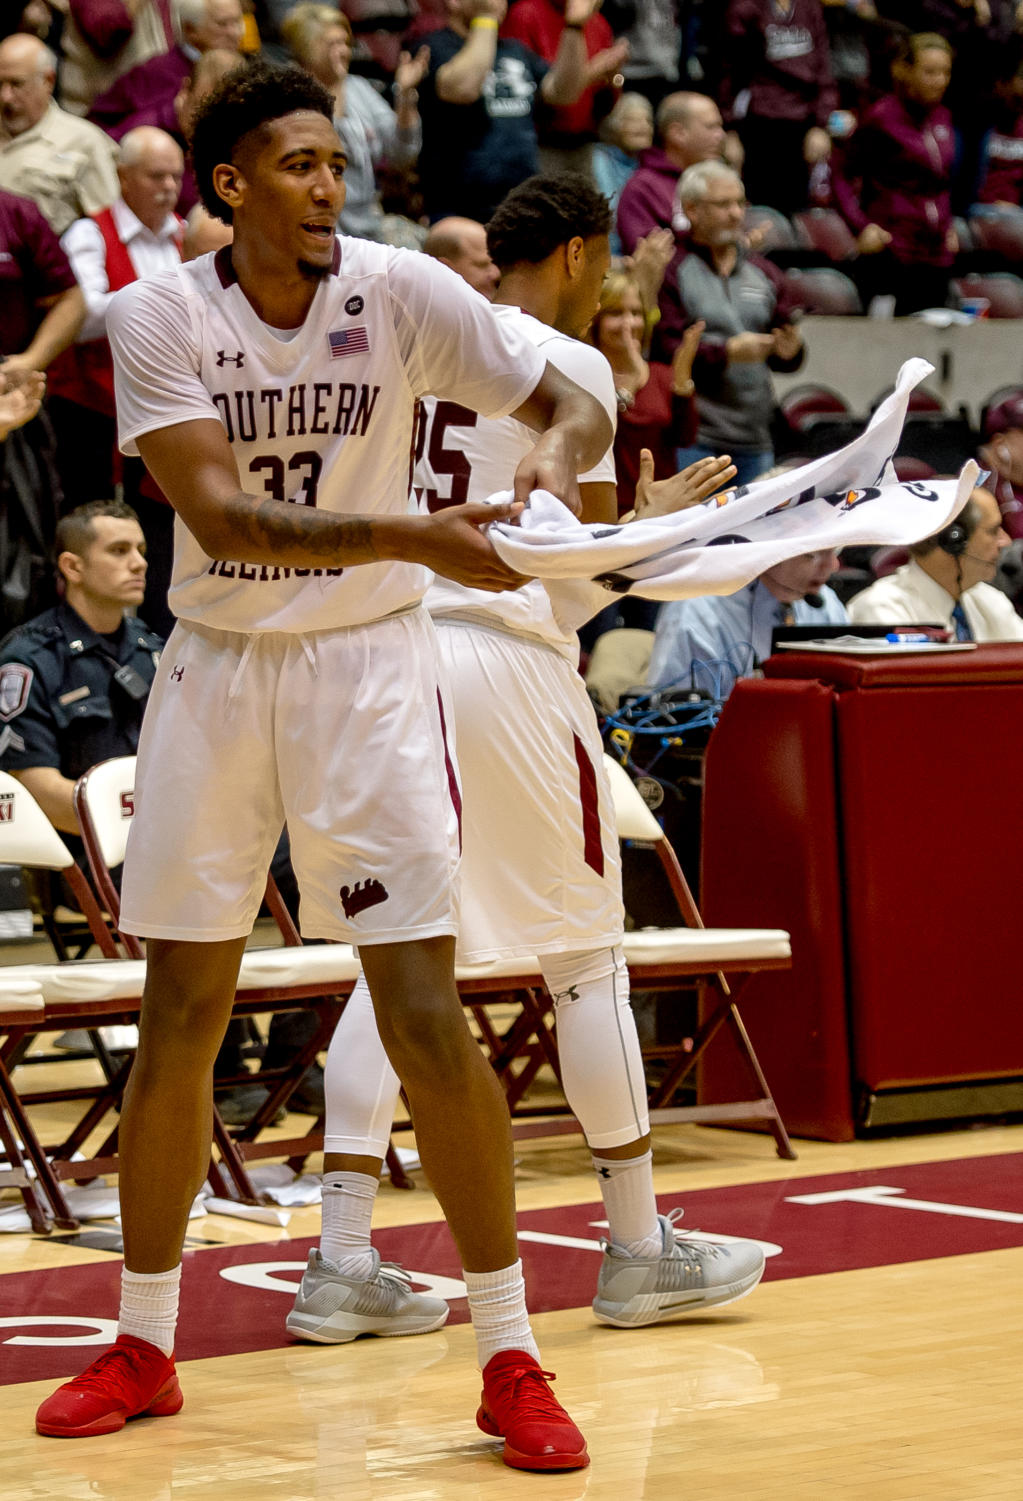 Junior+center+Kavion+Pippen+celebrates+at+the+buzzer+Sunday%2C+Jan.+21%2C+2018%2C+during+the+Salukis%27+64-53+victory+over+the+University+of+Northern+Iowa+Panthers+at+SIU+Arena.+%28Brian+Munoz+%7C+%40BrianMMunoz%29